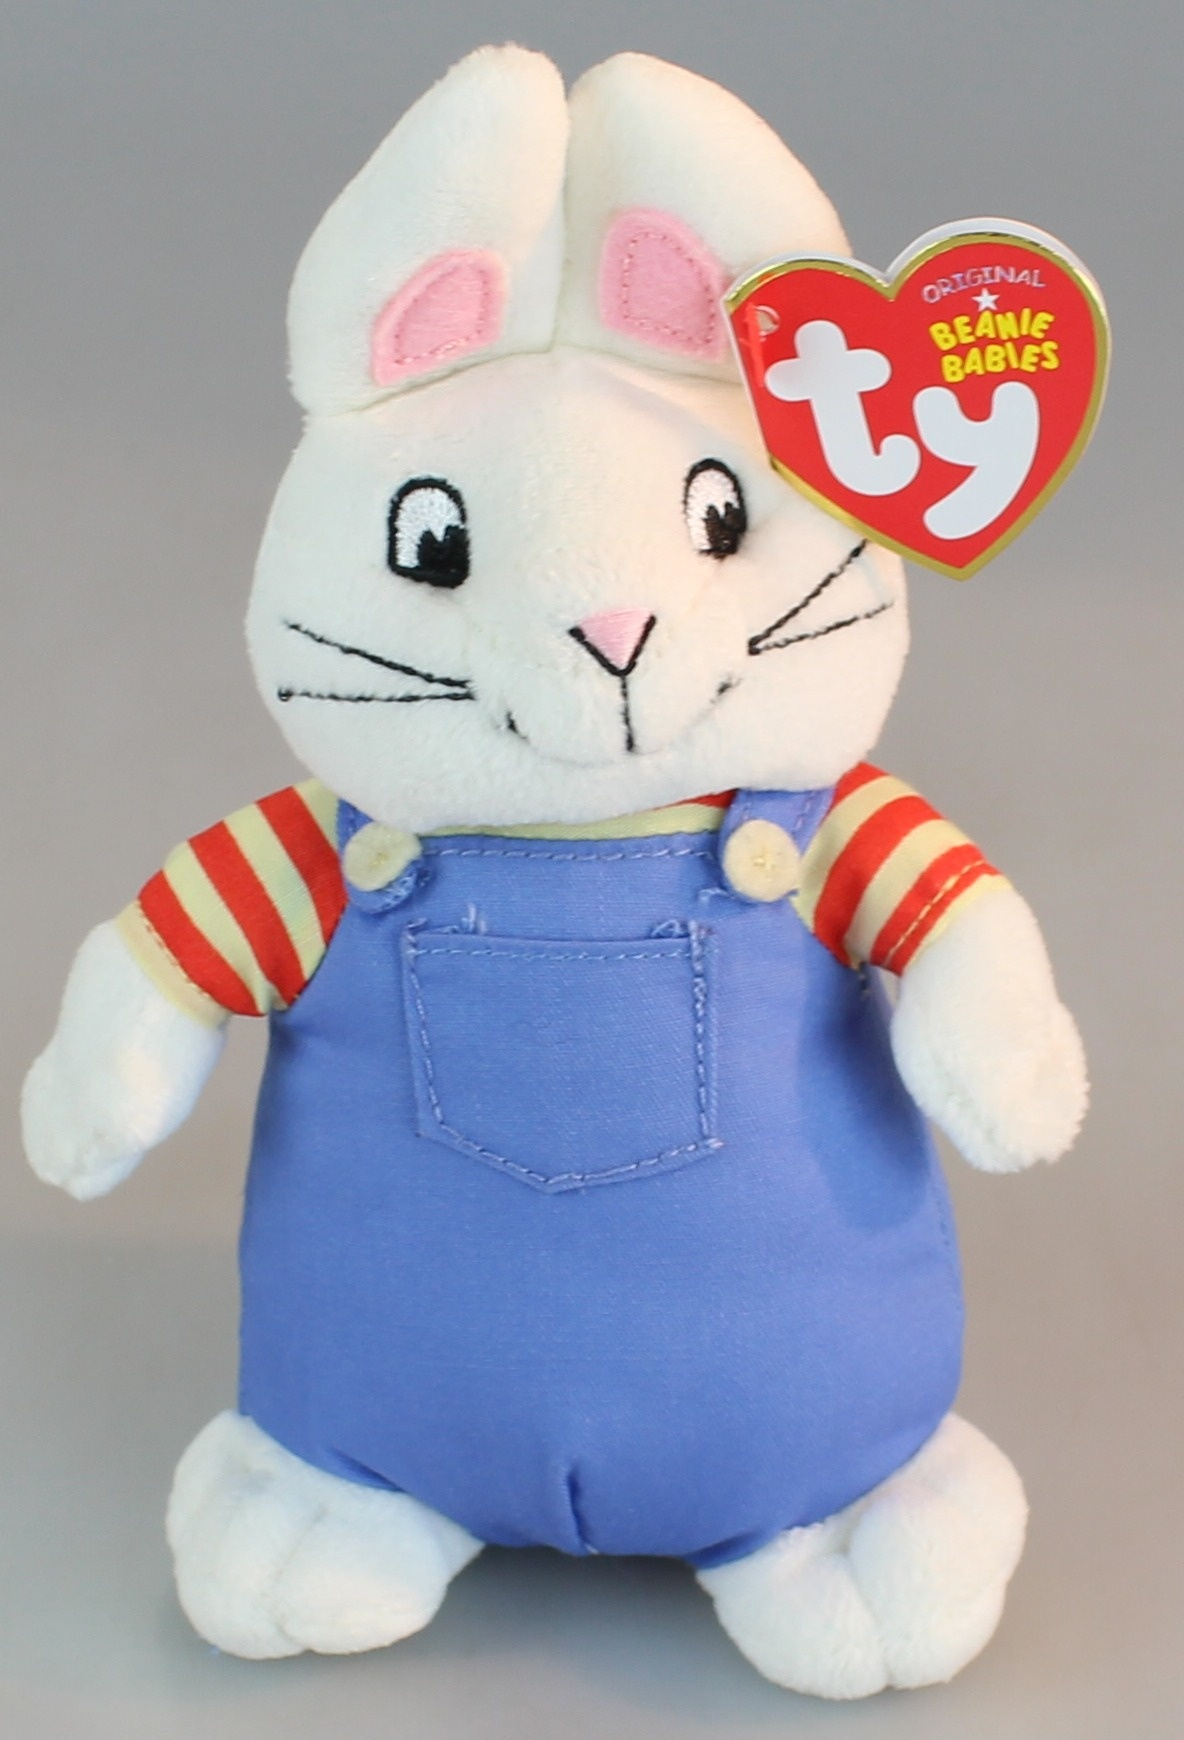 Max And Ruby Toys  Buy Online from Fishpond.com 238eca2b1d7d